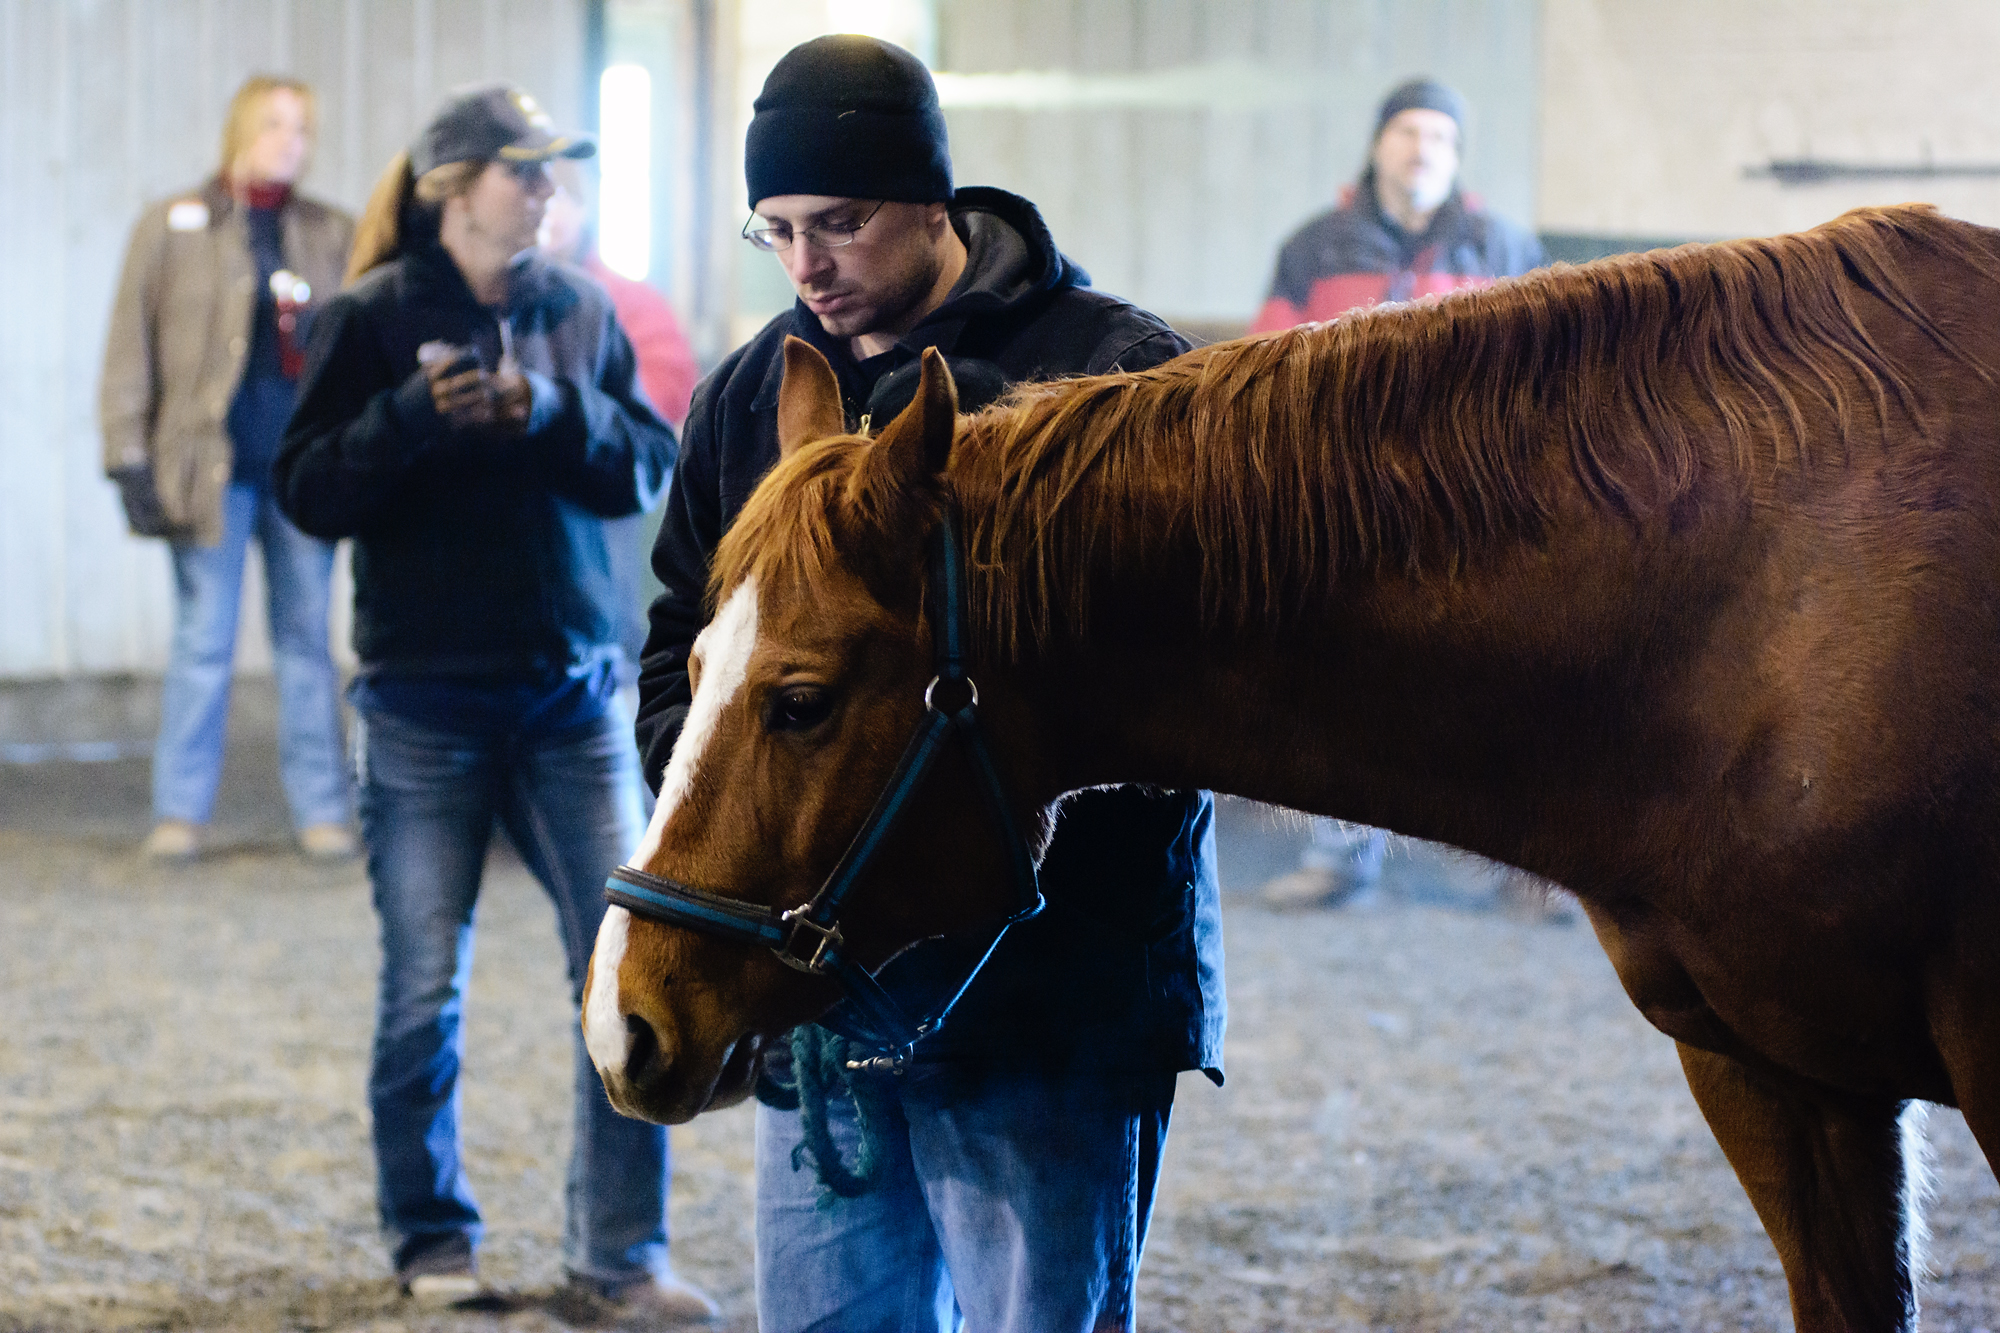 About EAP - Equine Assisted Psychotherapy (EAP) incorporates horses experientially and used as tools for mental and behavioral health therapy and personal growth. Because it is experiential in nature, each person who goes thru the program takes away something different.Why horses? While they are large and sometimes intimidating creatures, they are inherently honest and offer a pure, non-judgmental relationship. Their feedback is immediate and accurate. They offer the participant a mirror into themselves and the opportunity to reflect, learn and grow through the interaction with the horses. Horses are forgiving and accept you for who you are regardless of your background.